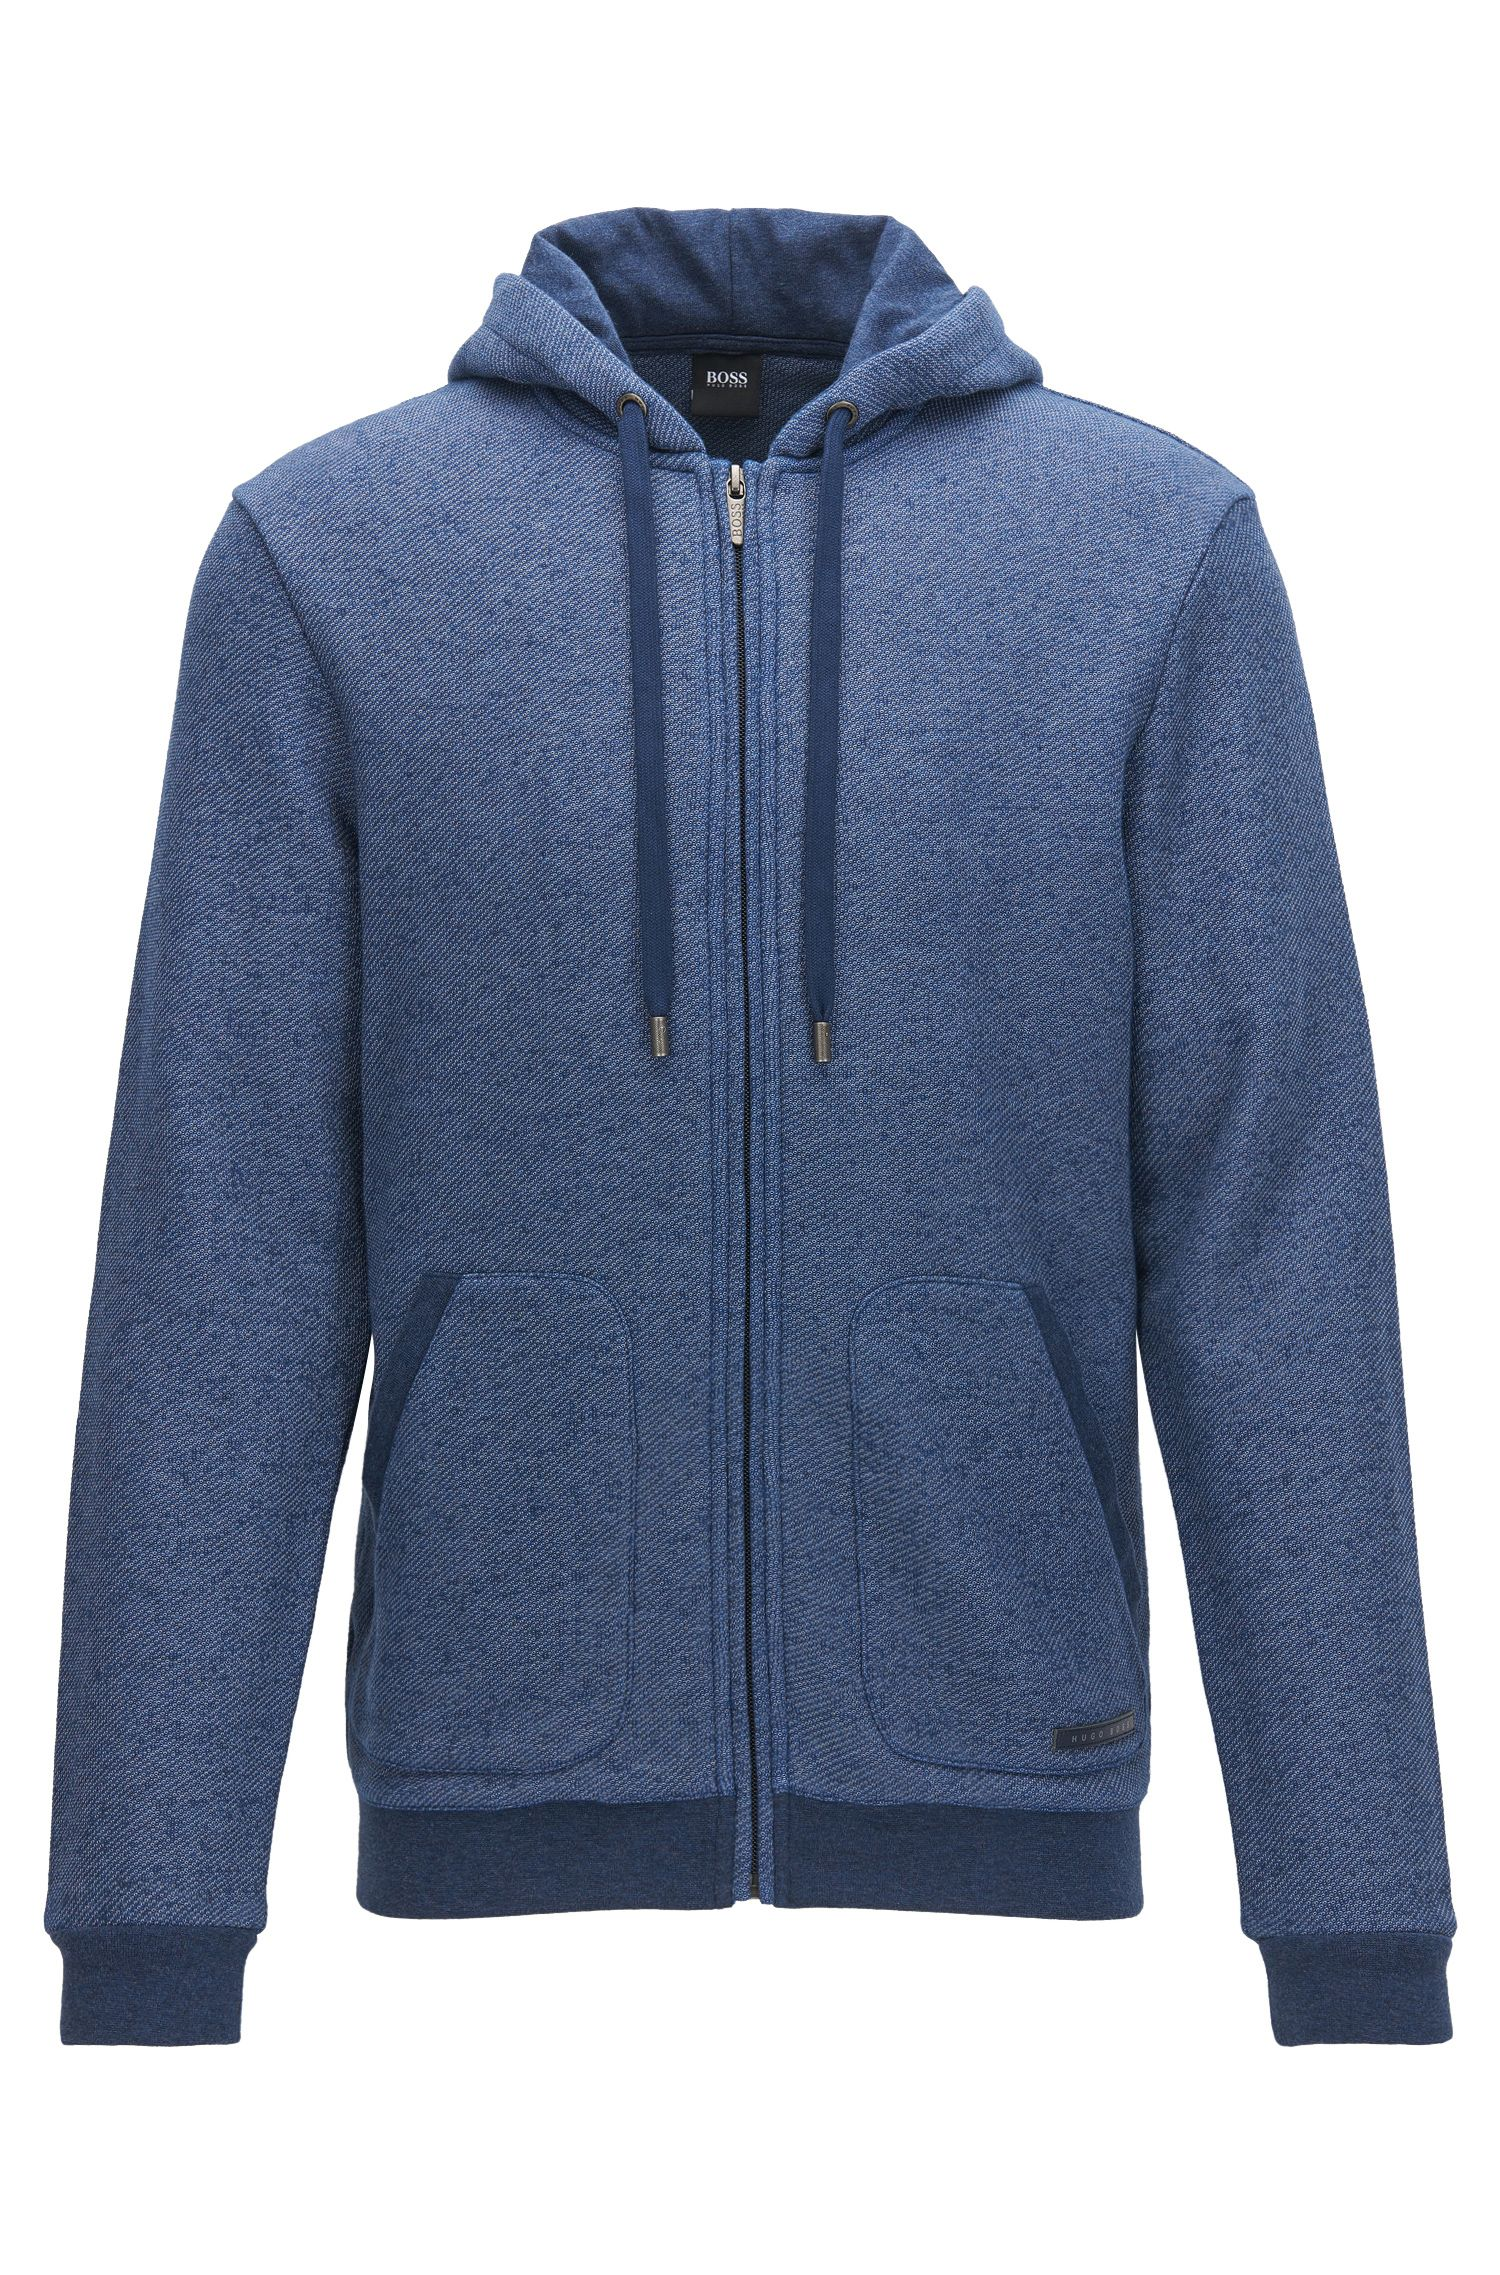 French Terry Hooded Sweatshirt | Jacket Hooded